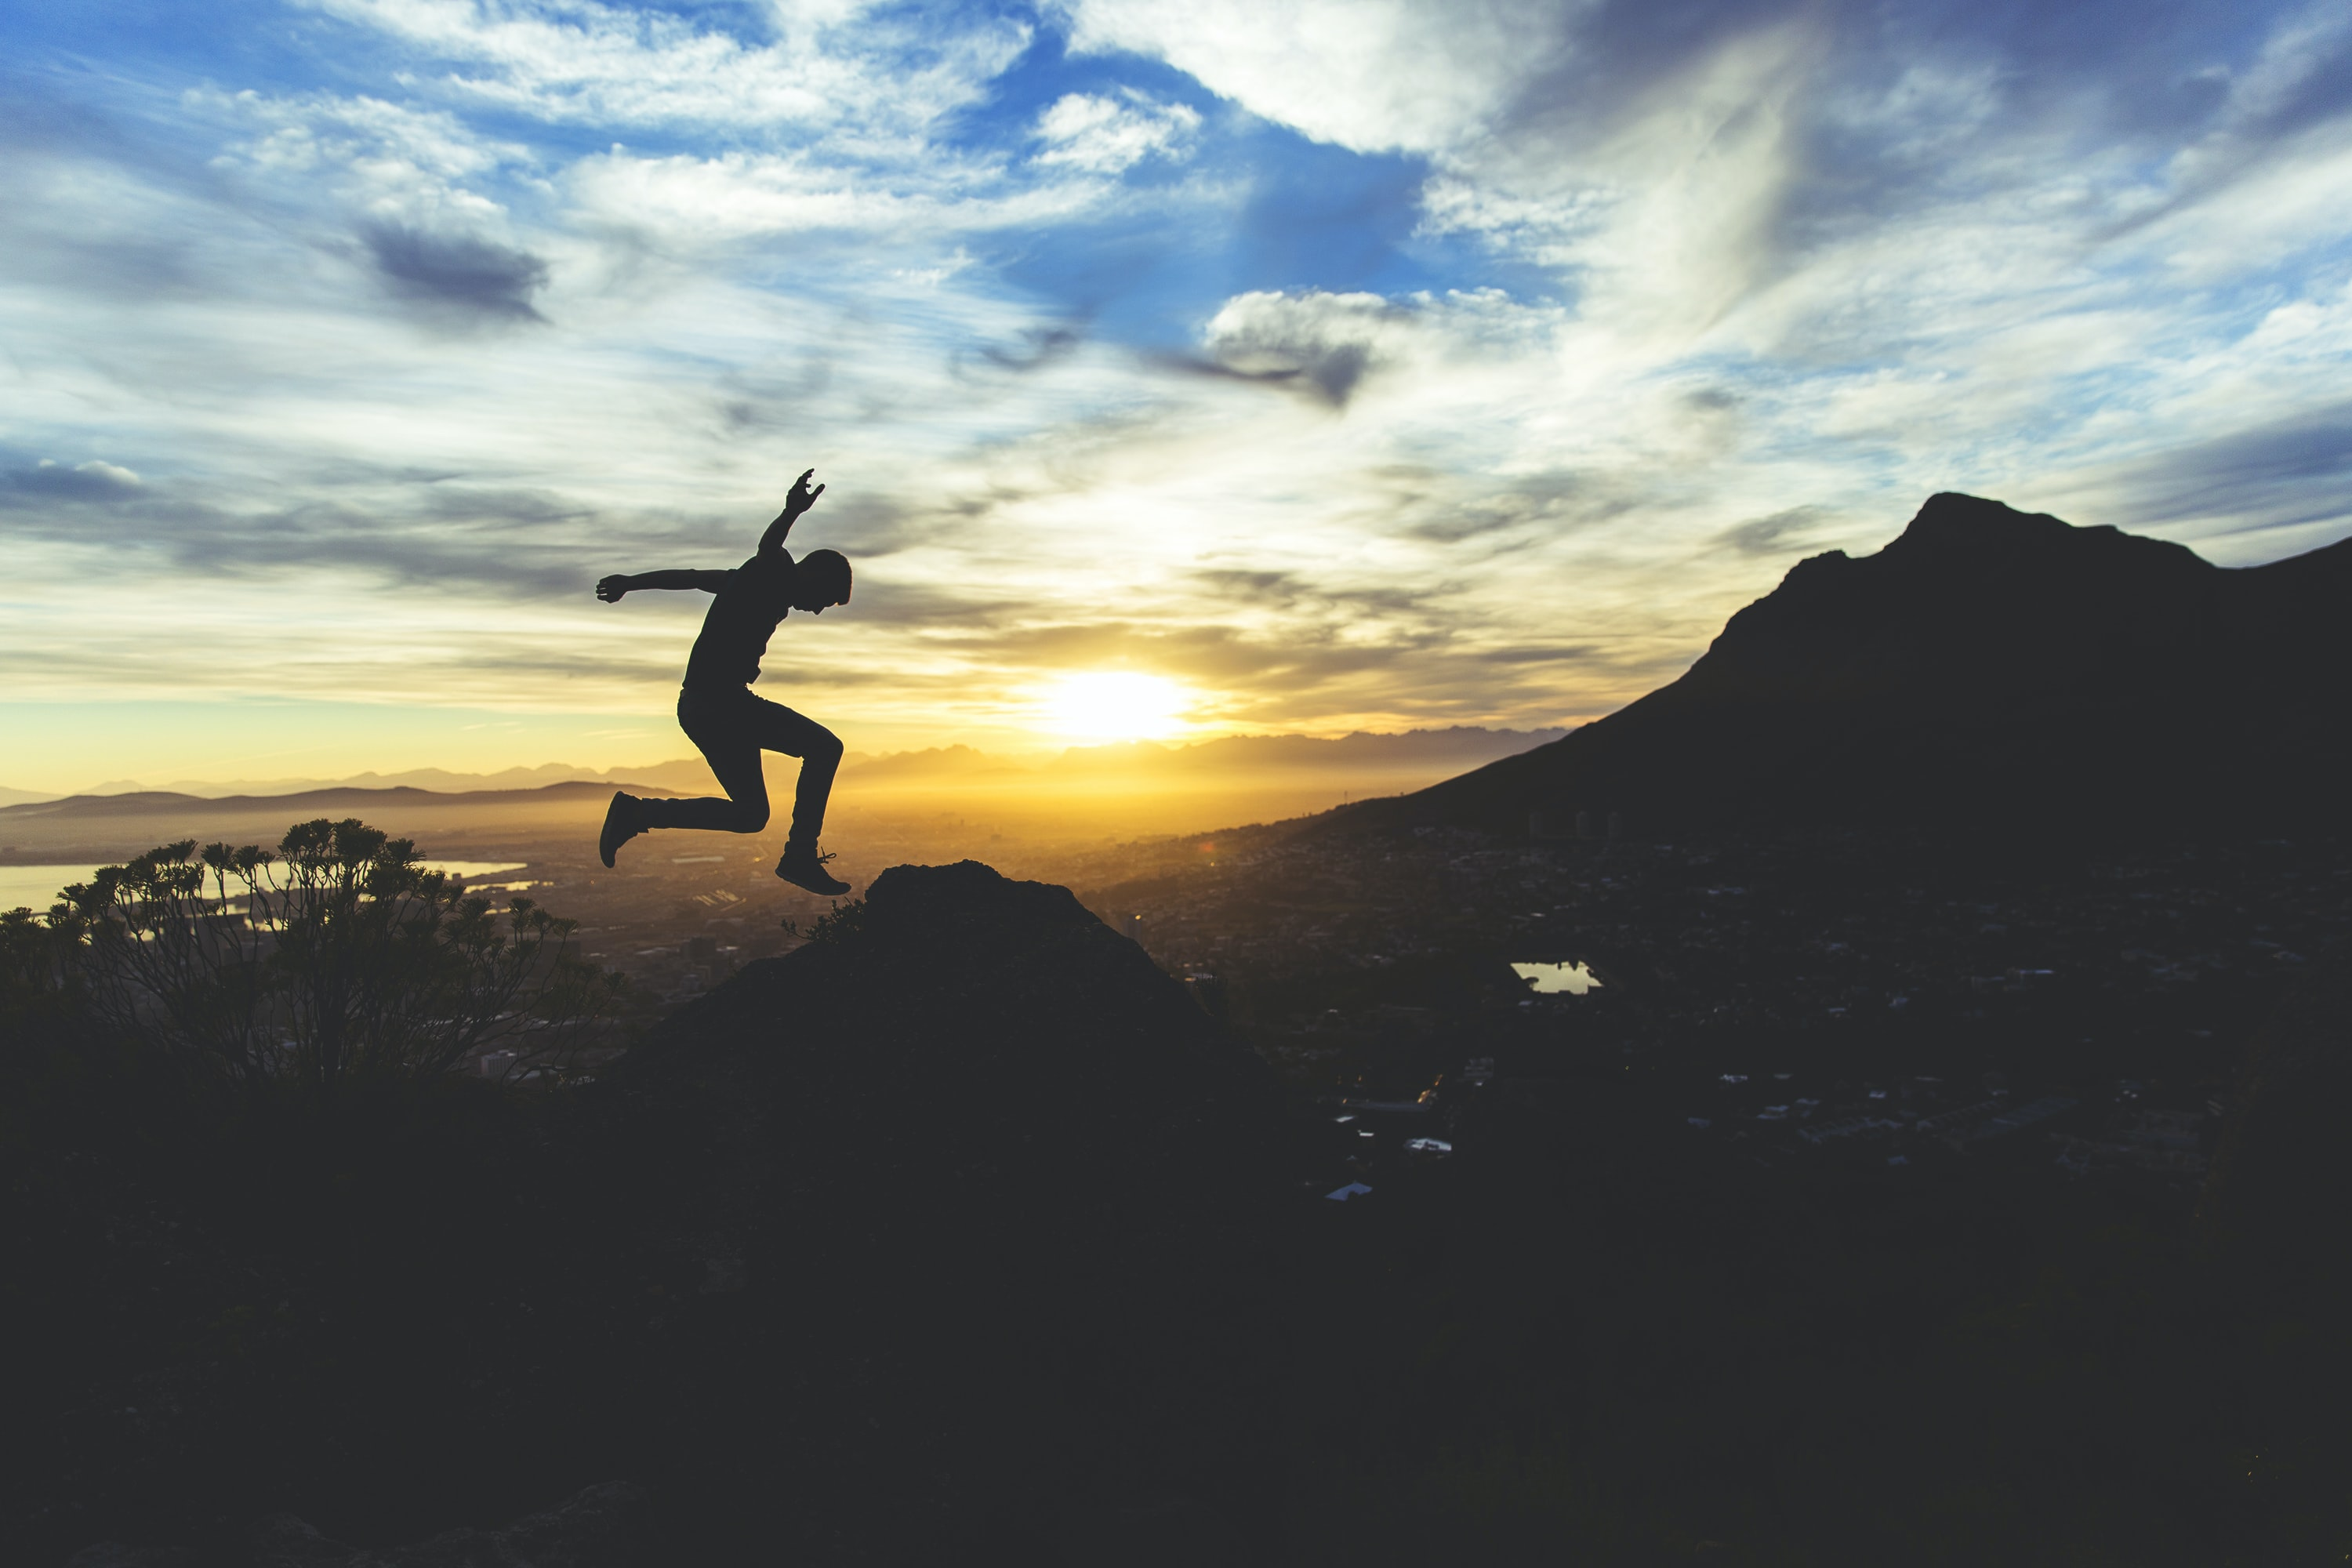 person jumping on hill during sunset